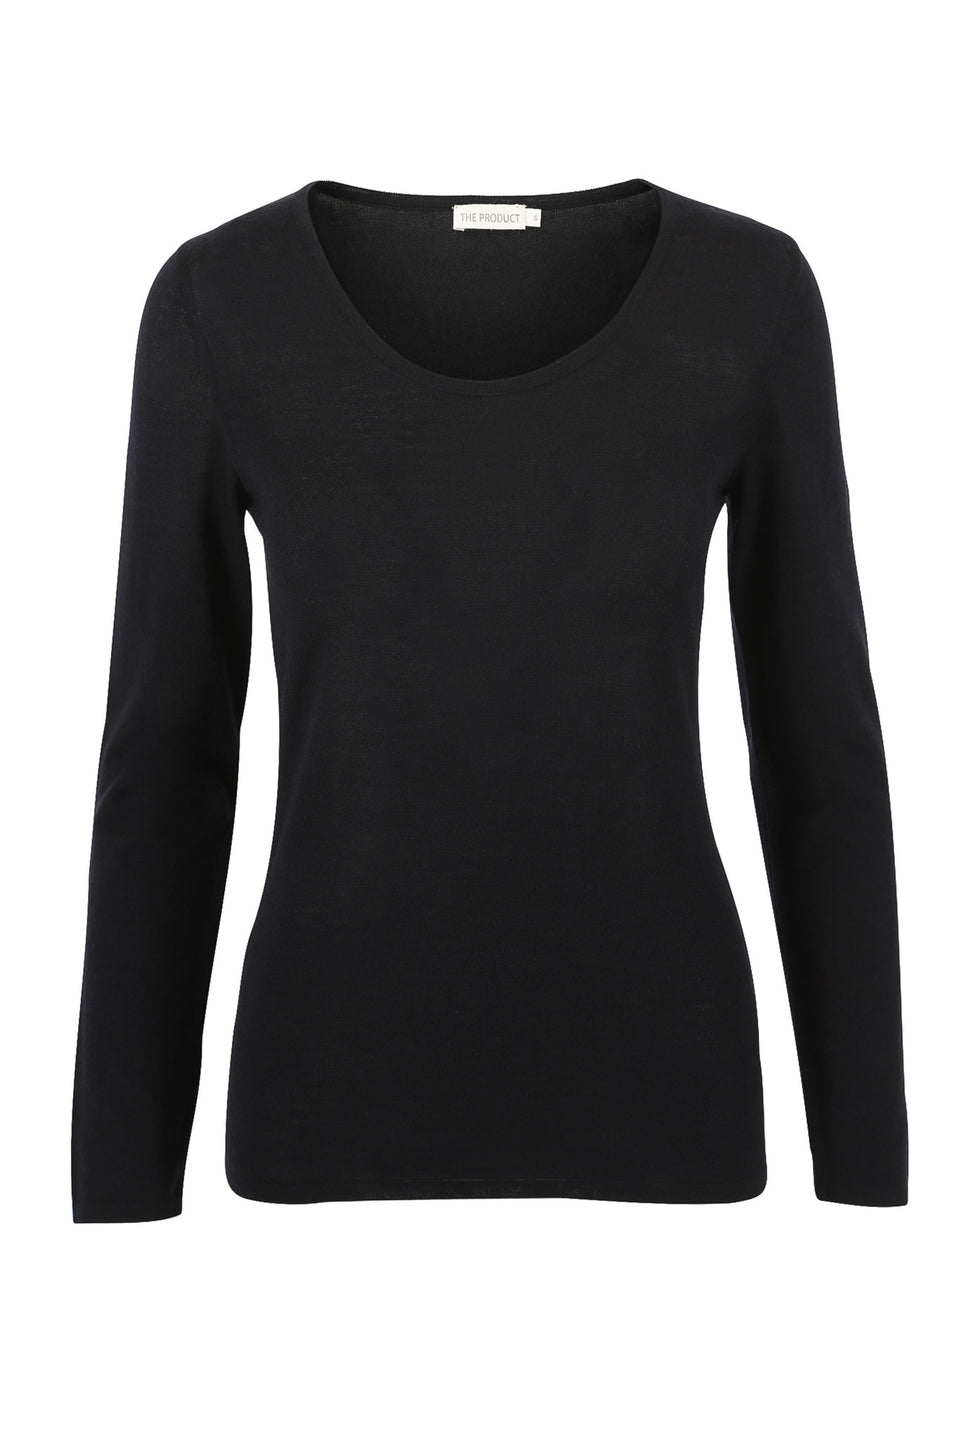 Women's Merino Long Sleeve